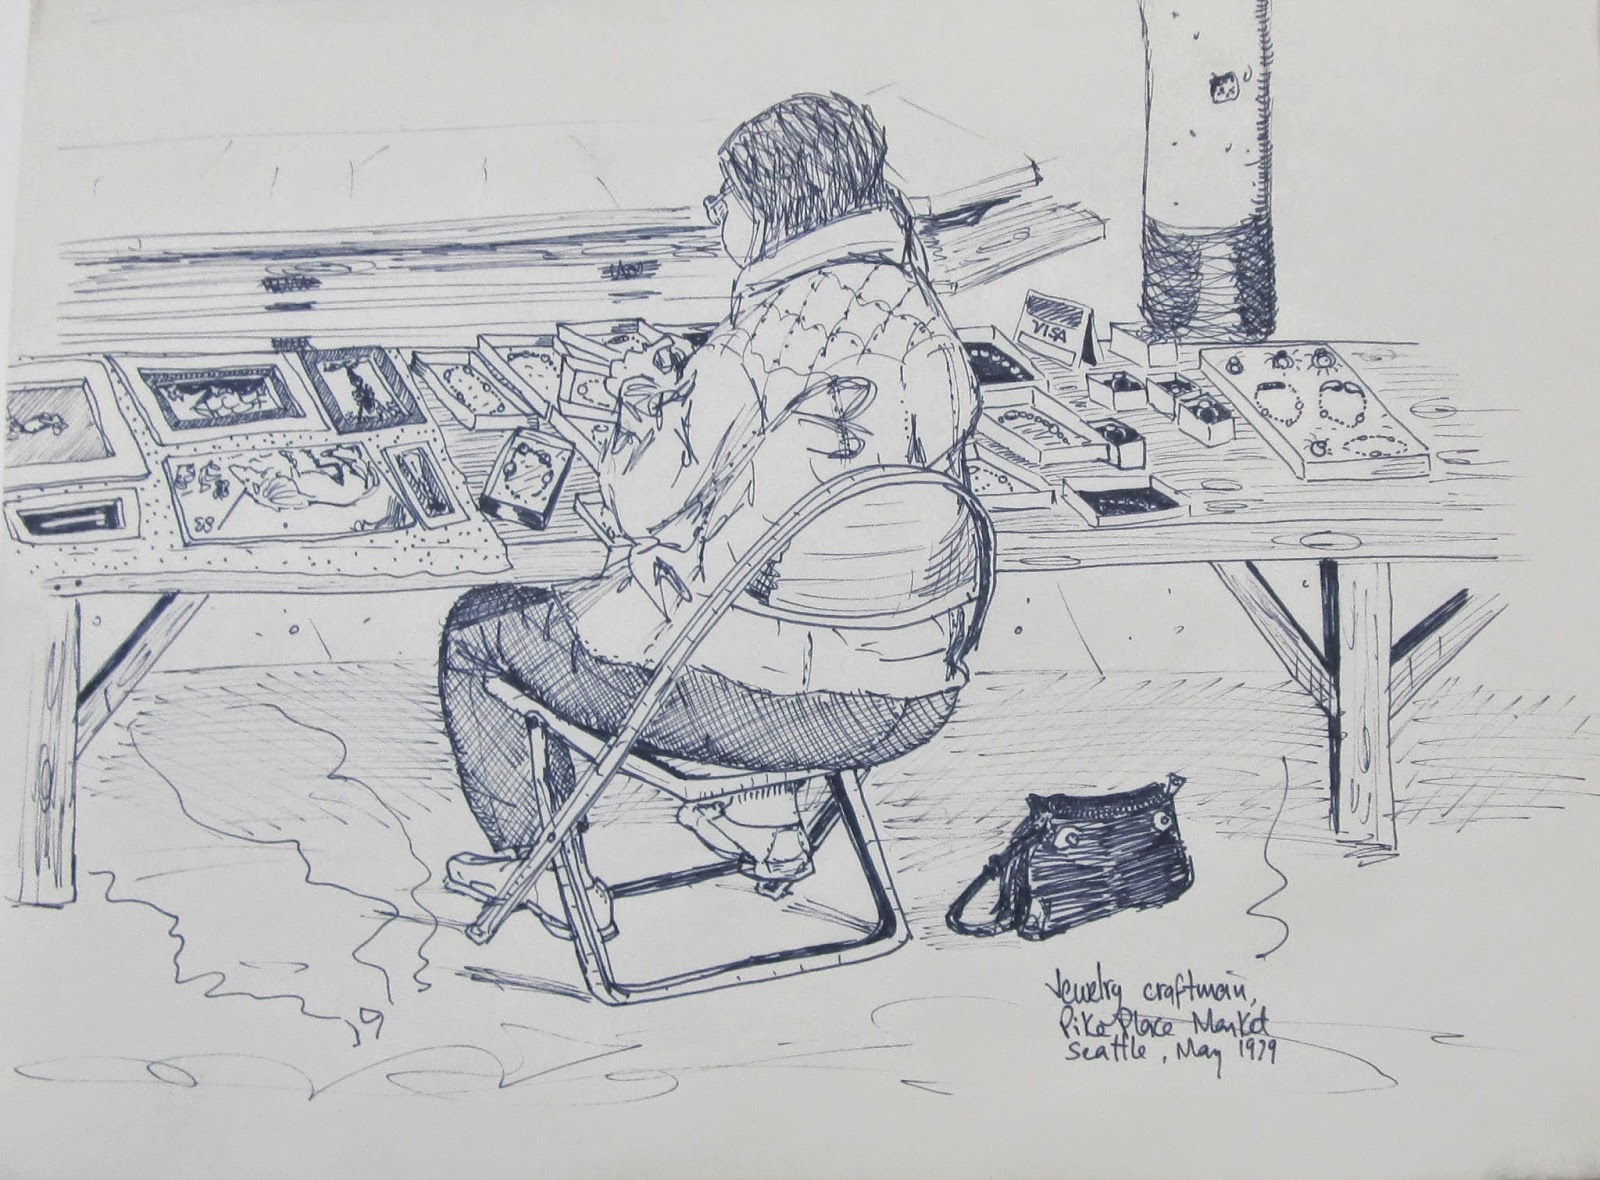 """Jewelry Craftsman, Pike Place Market, Seattle."" 8.5 x 11 inches. Pen and Ink. 1979"